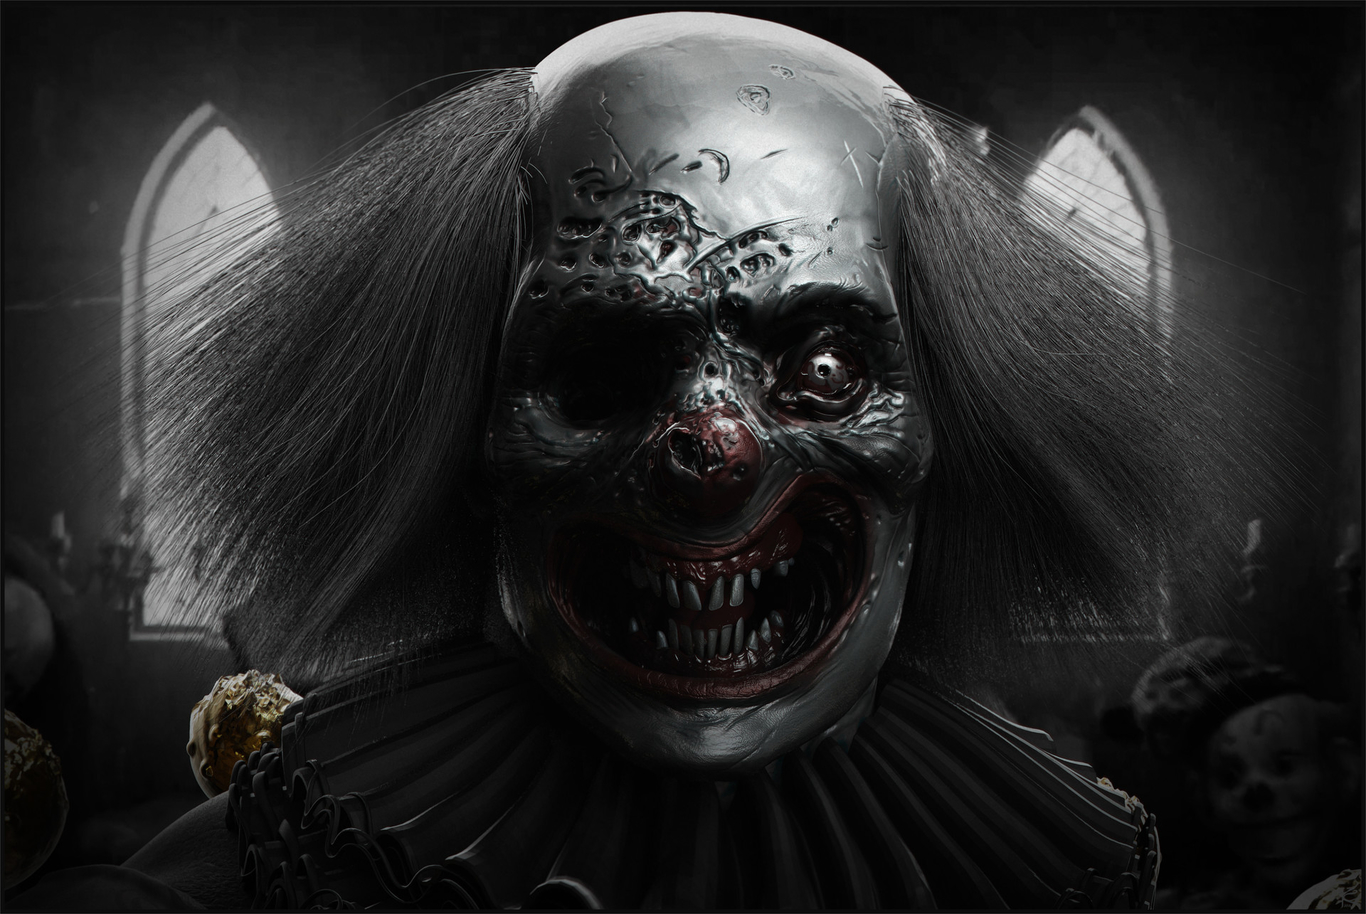 Kc production pennywise 1 b16869e9 vqo7